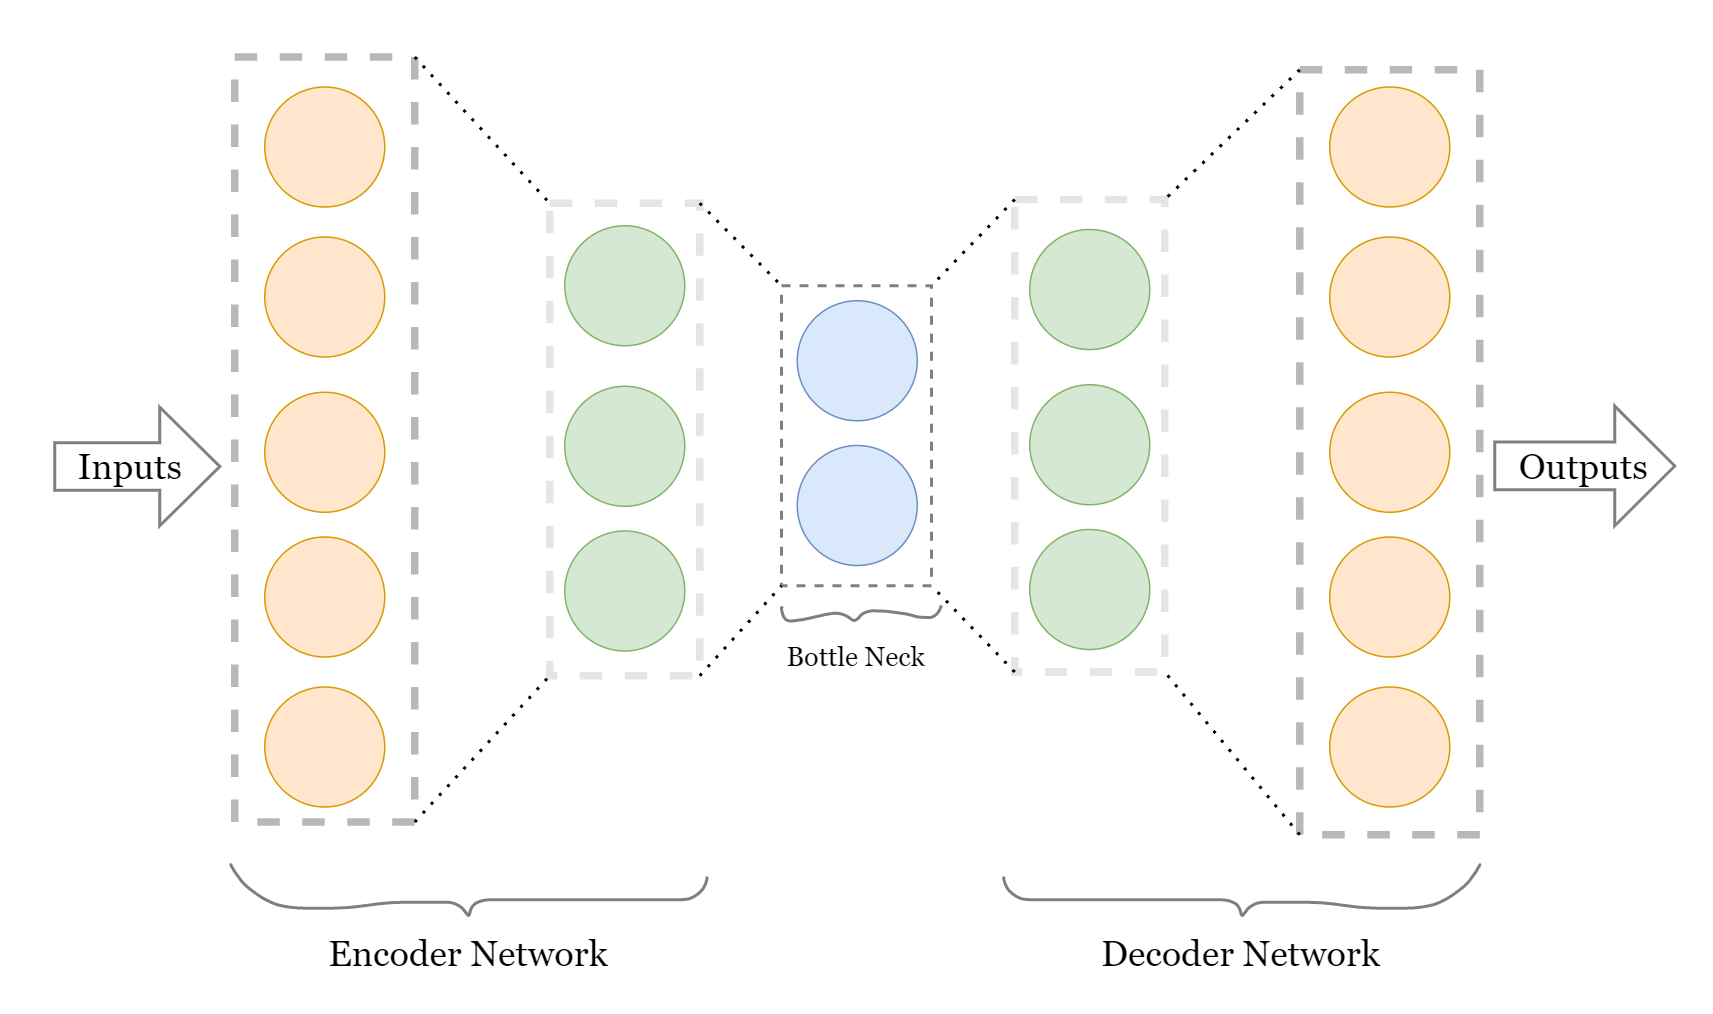 Denoise Images with Autoencoders 2